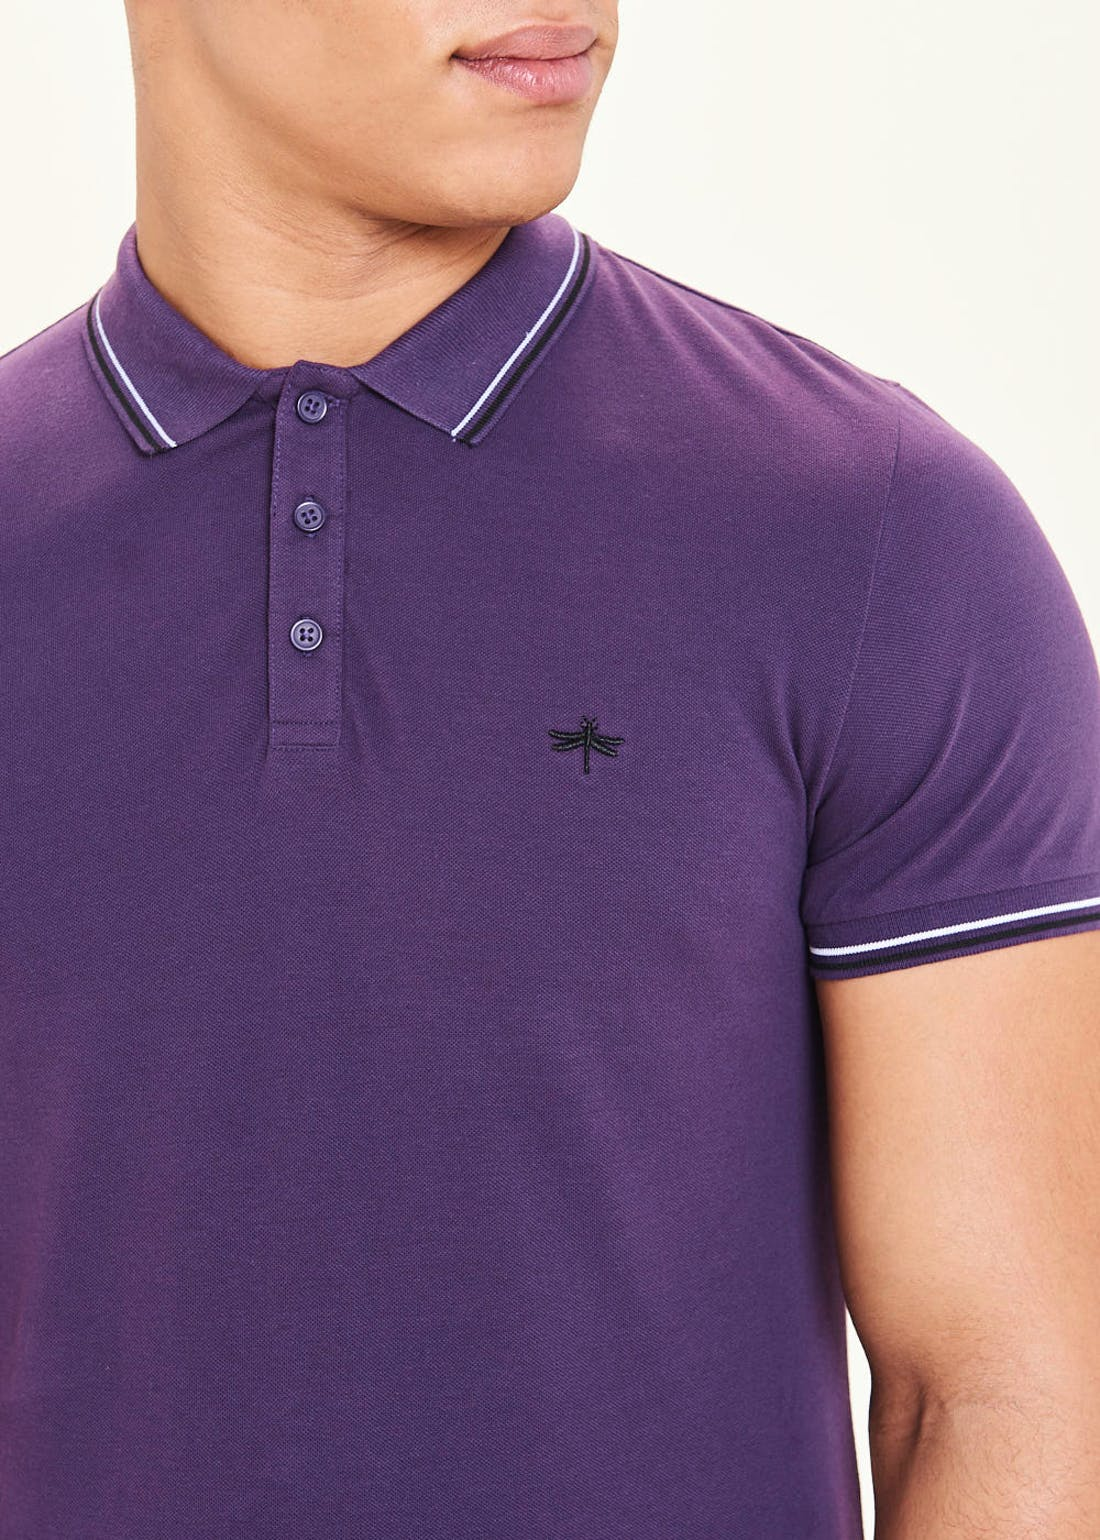 Short Sleeve Tipped Polo Shirt